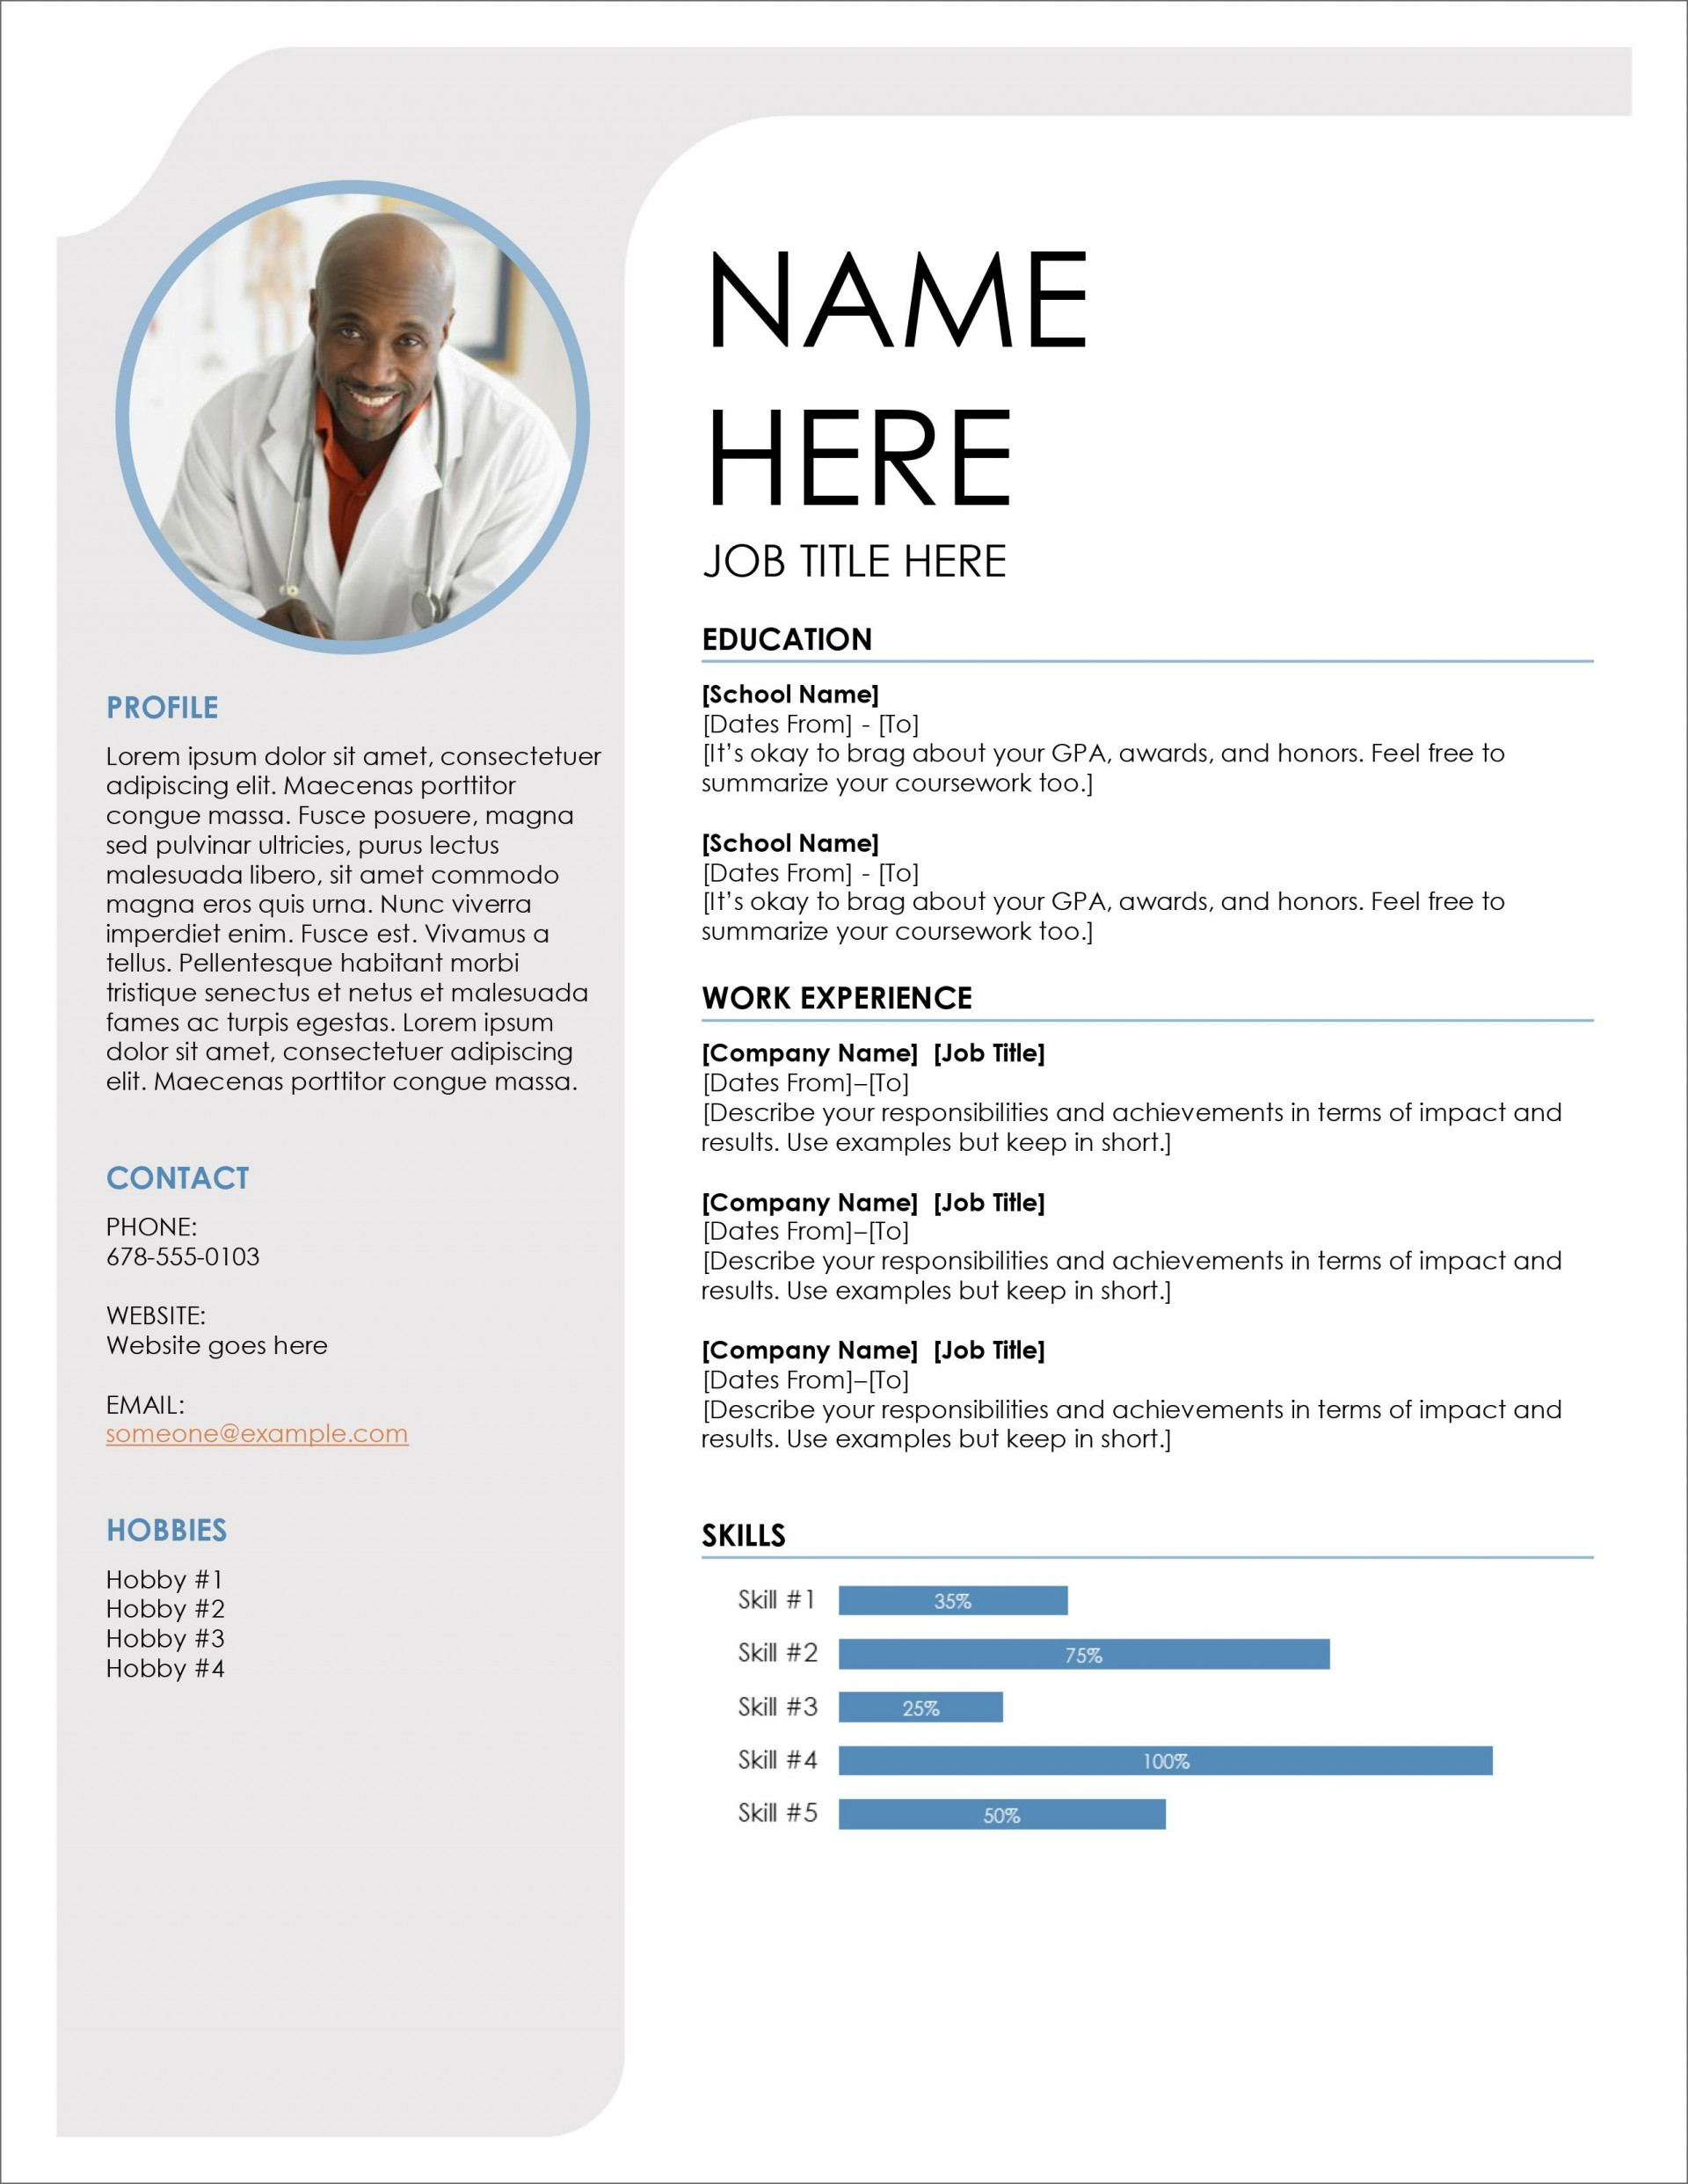 005 Unique Curriculum Vitae Template Free High Def  Download South Africa Format Pdf Sample1920